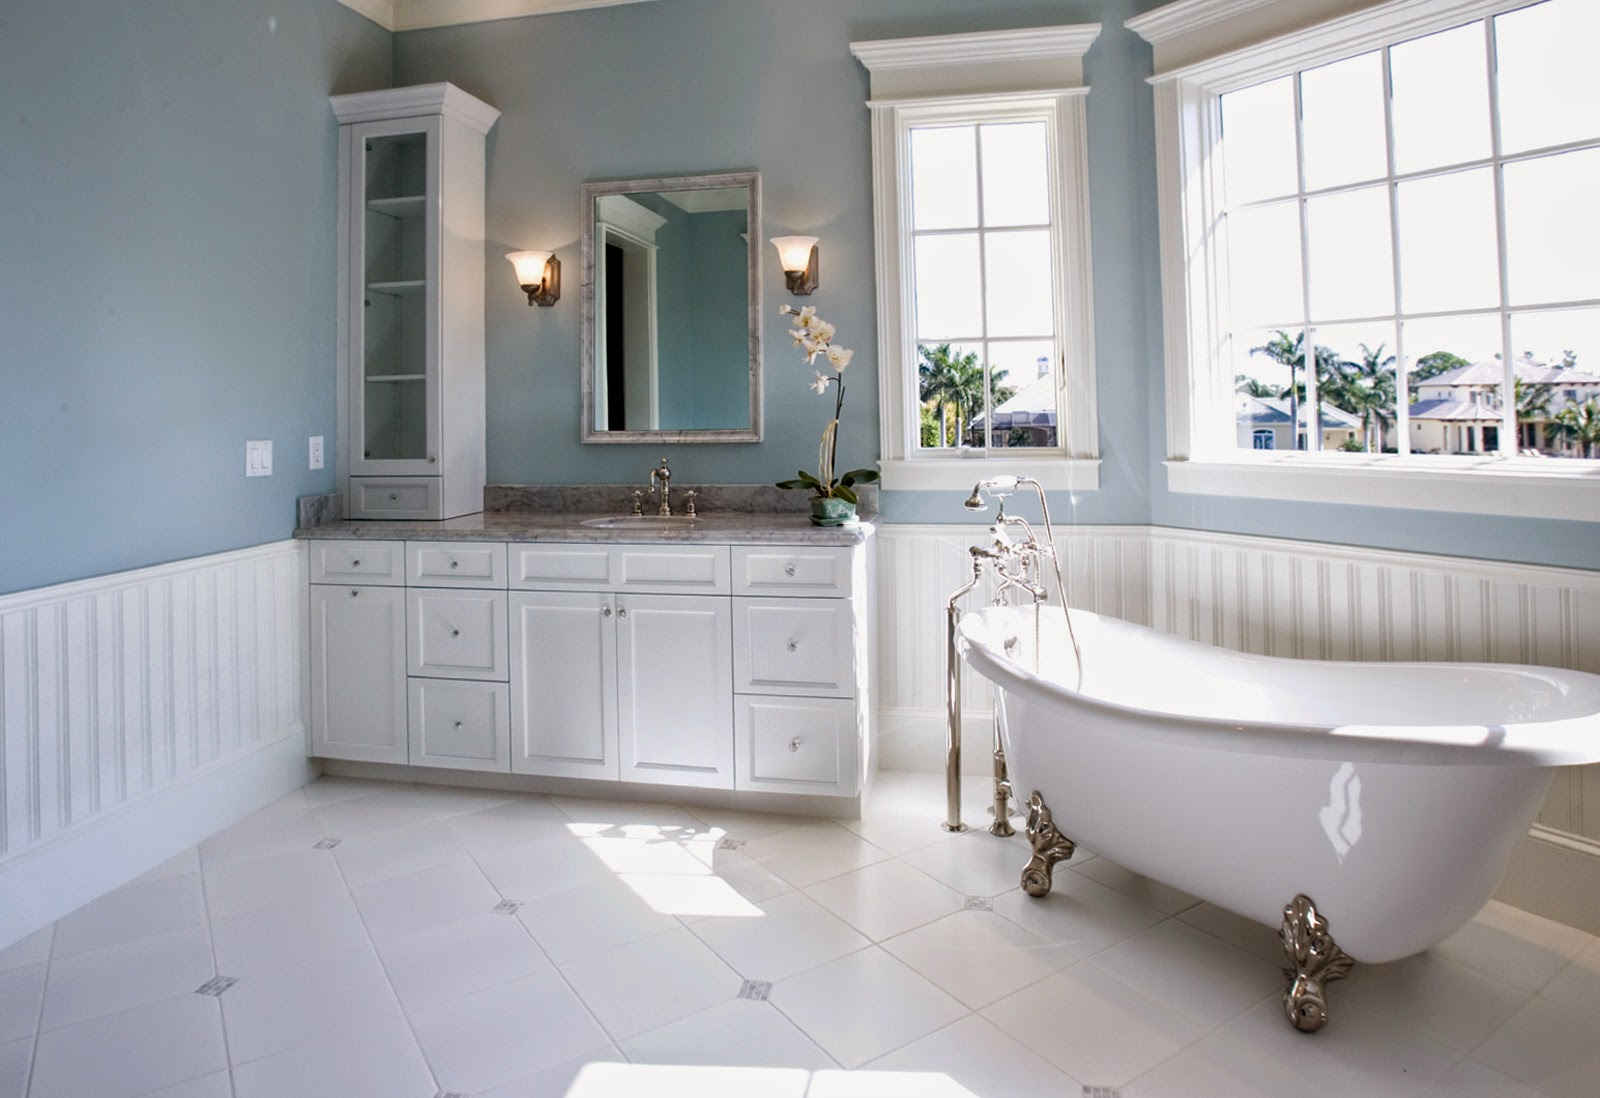 Top 10 beautiful bathroom design 2014 home interior blog magazine - Best bathrooms ...